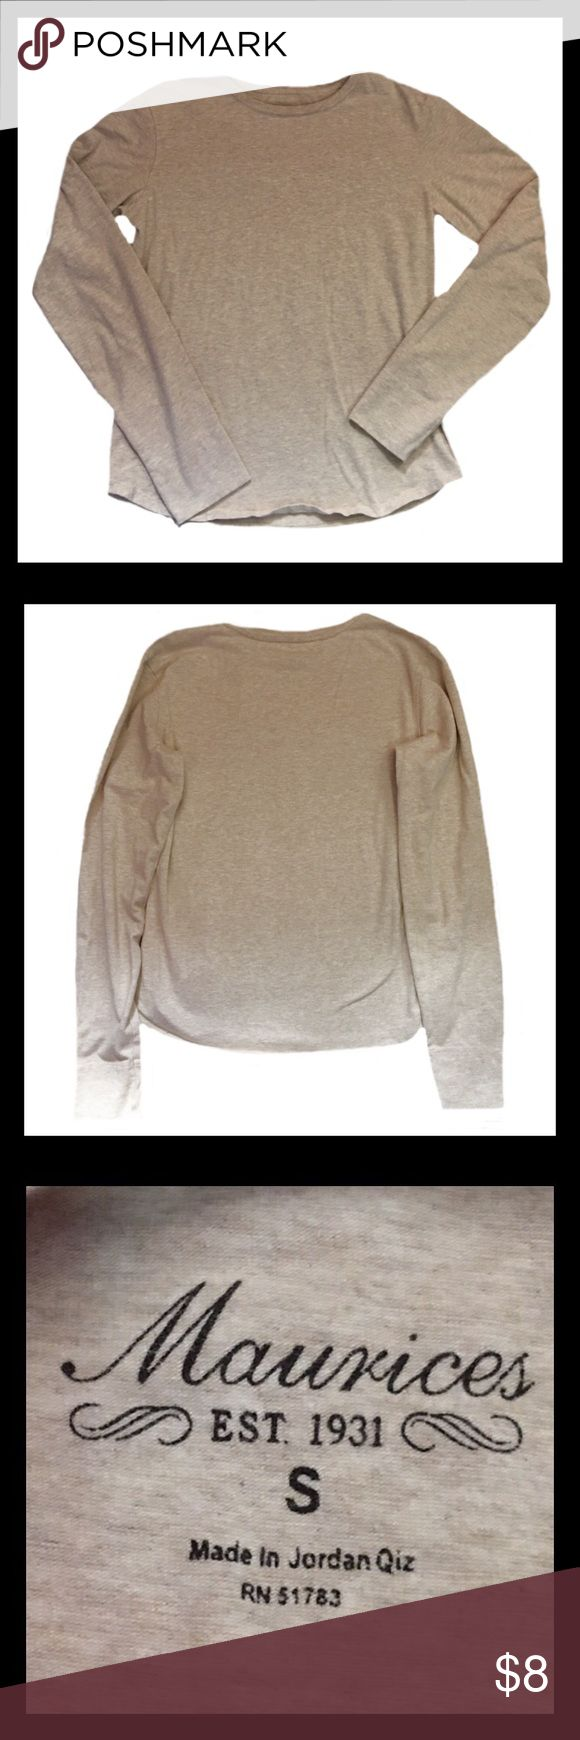 MAURICES Long Sleeve Shirt Gently used MAURICES long sleeve shirt; Size small.    *****BUNDLE AND SAVE***** Maurices Tops Tees - Long Sleeve